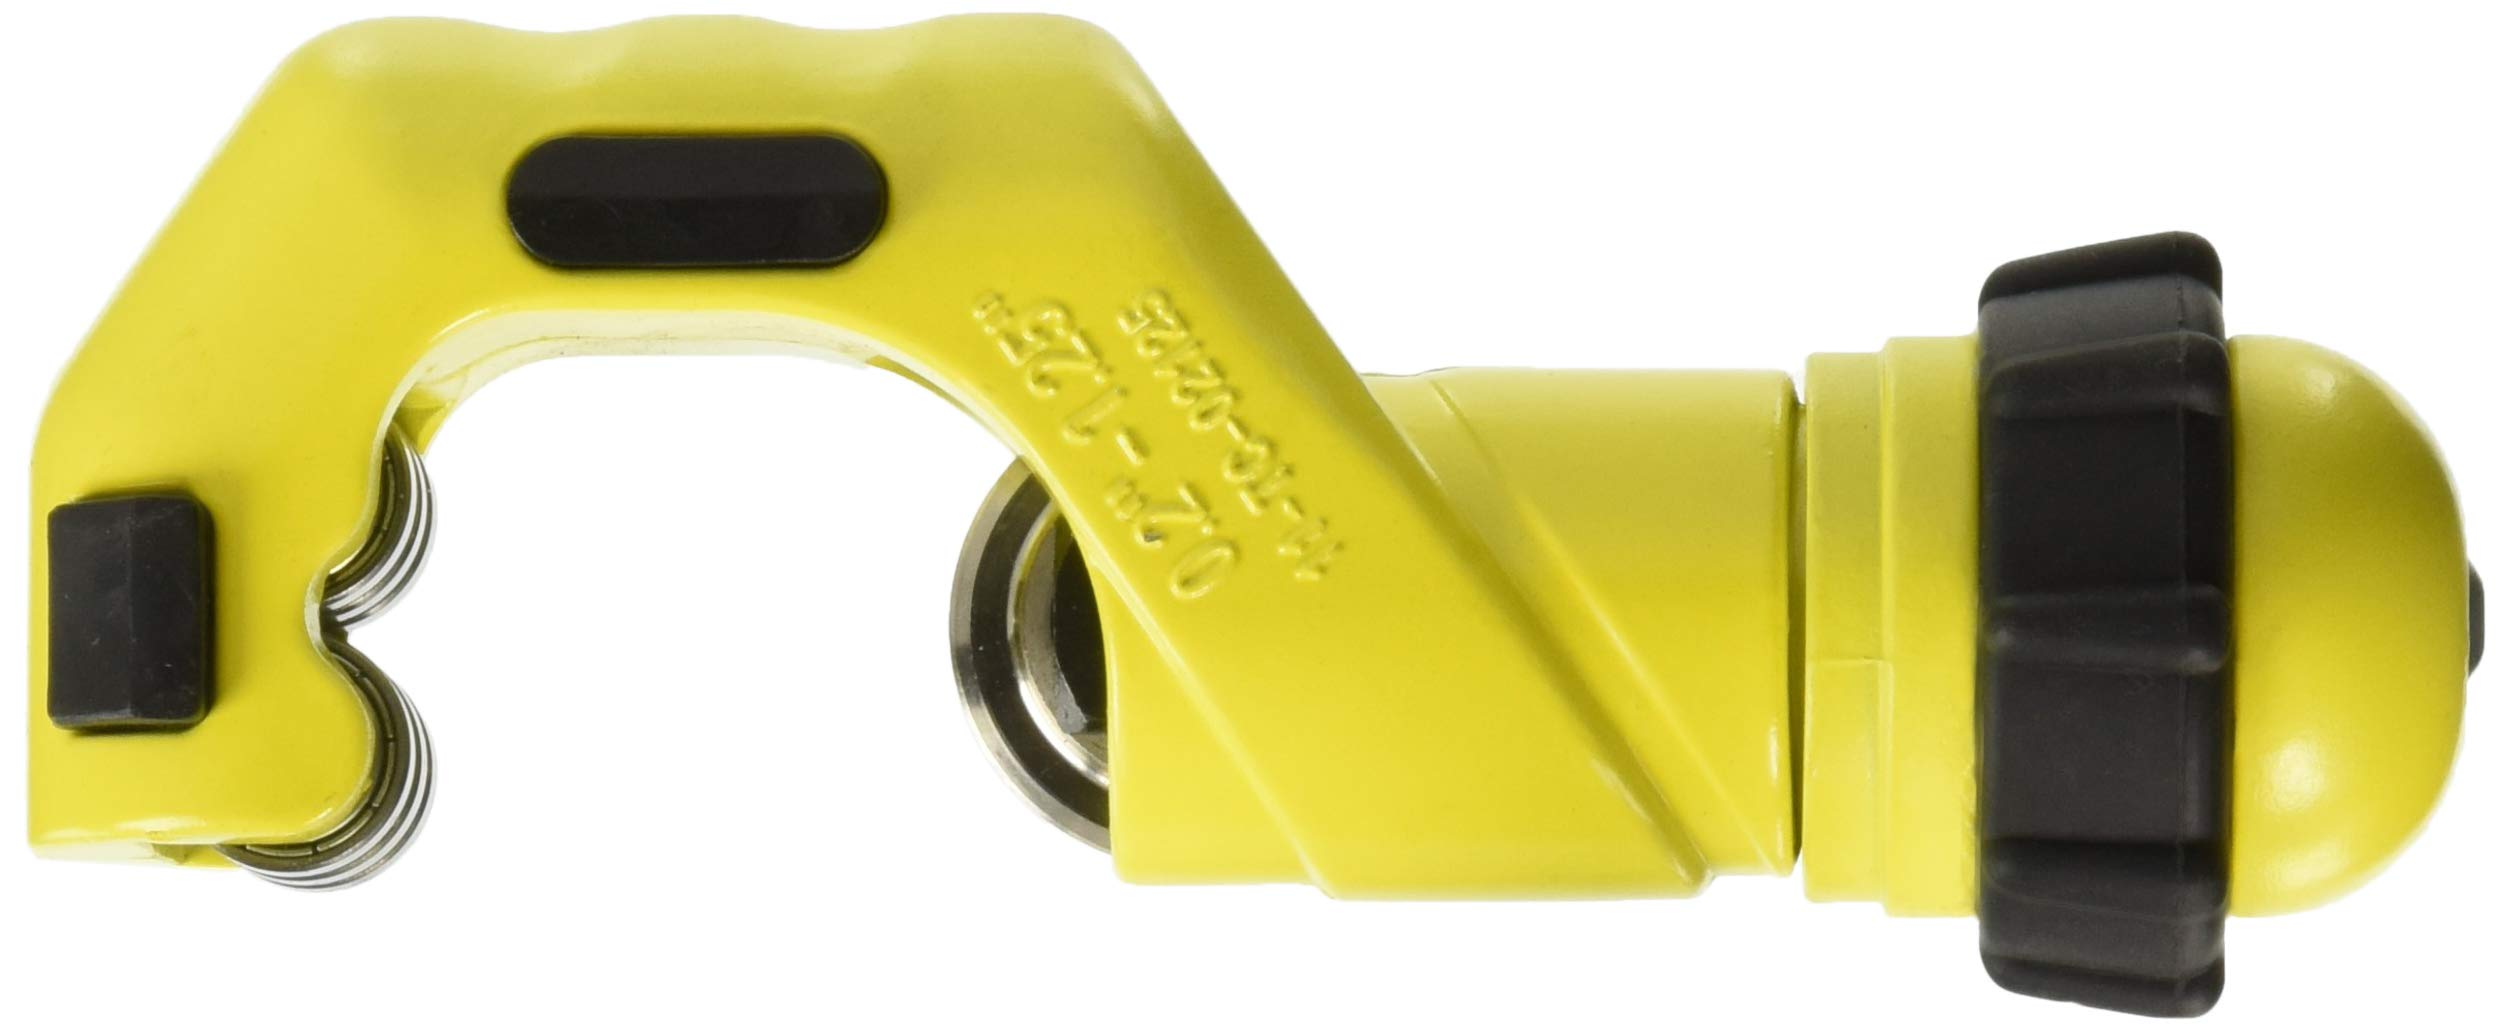 HOME-FLEX CSST Tubing Cutter For 1/4 In. To 1-1/4 In. Tubing by HOME-FLEX